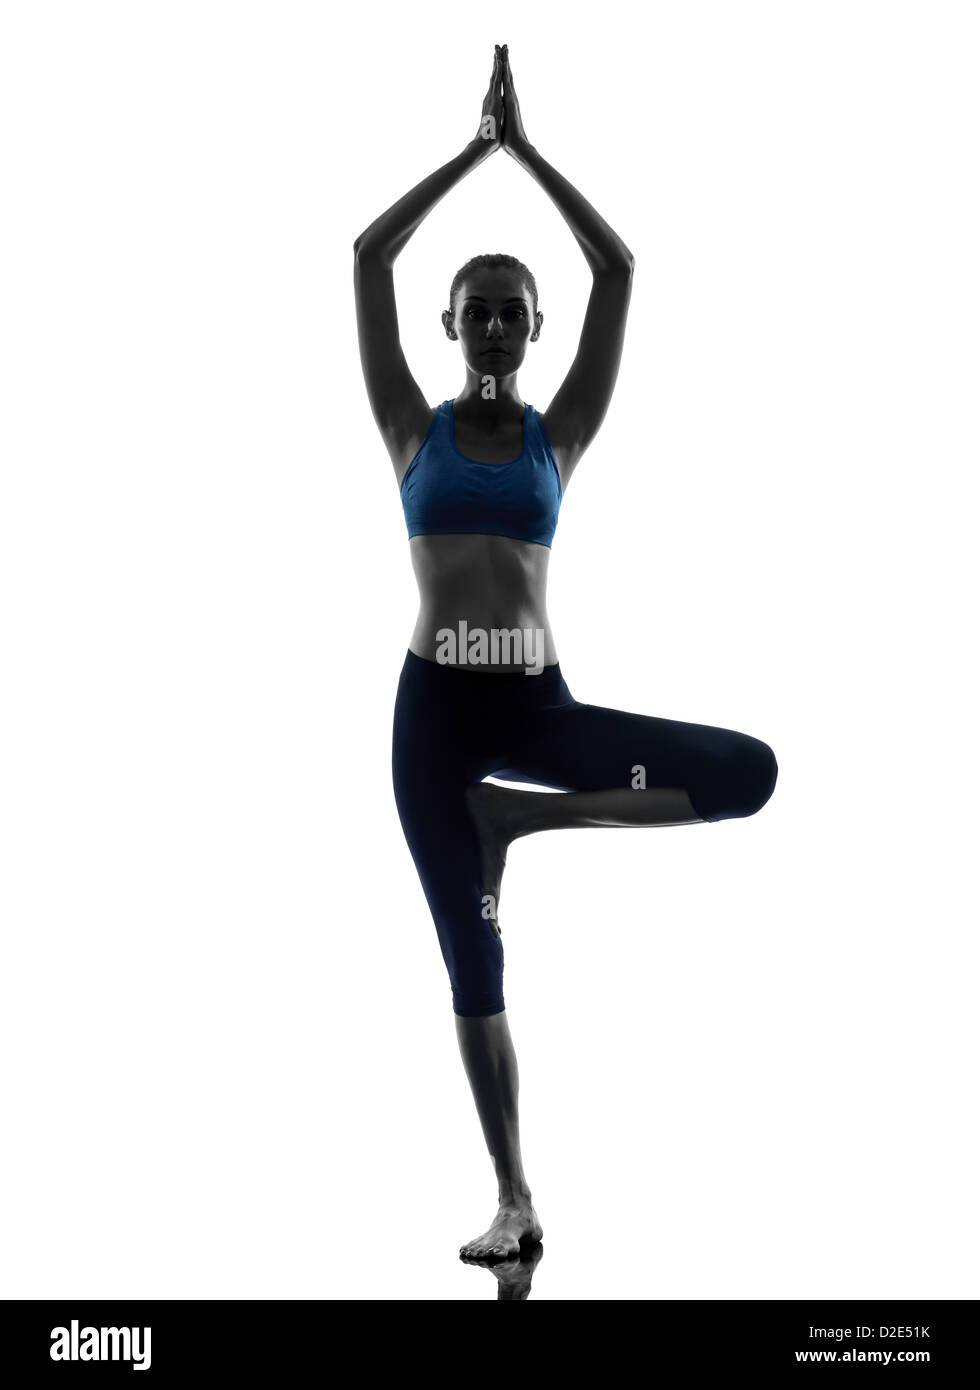 one  woman exercising yoga tree pose Vrksasana in silhouette studio isolated on white background - Stock Image